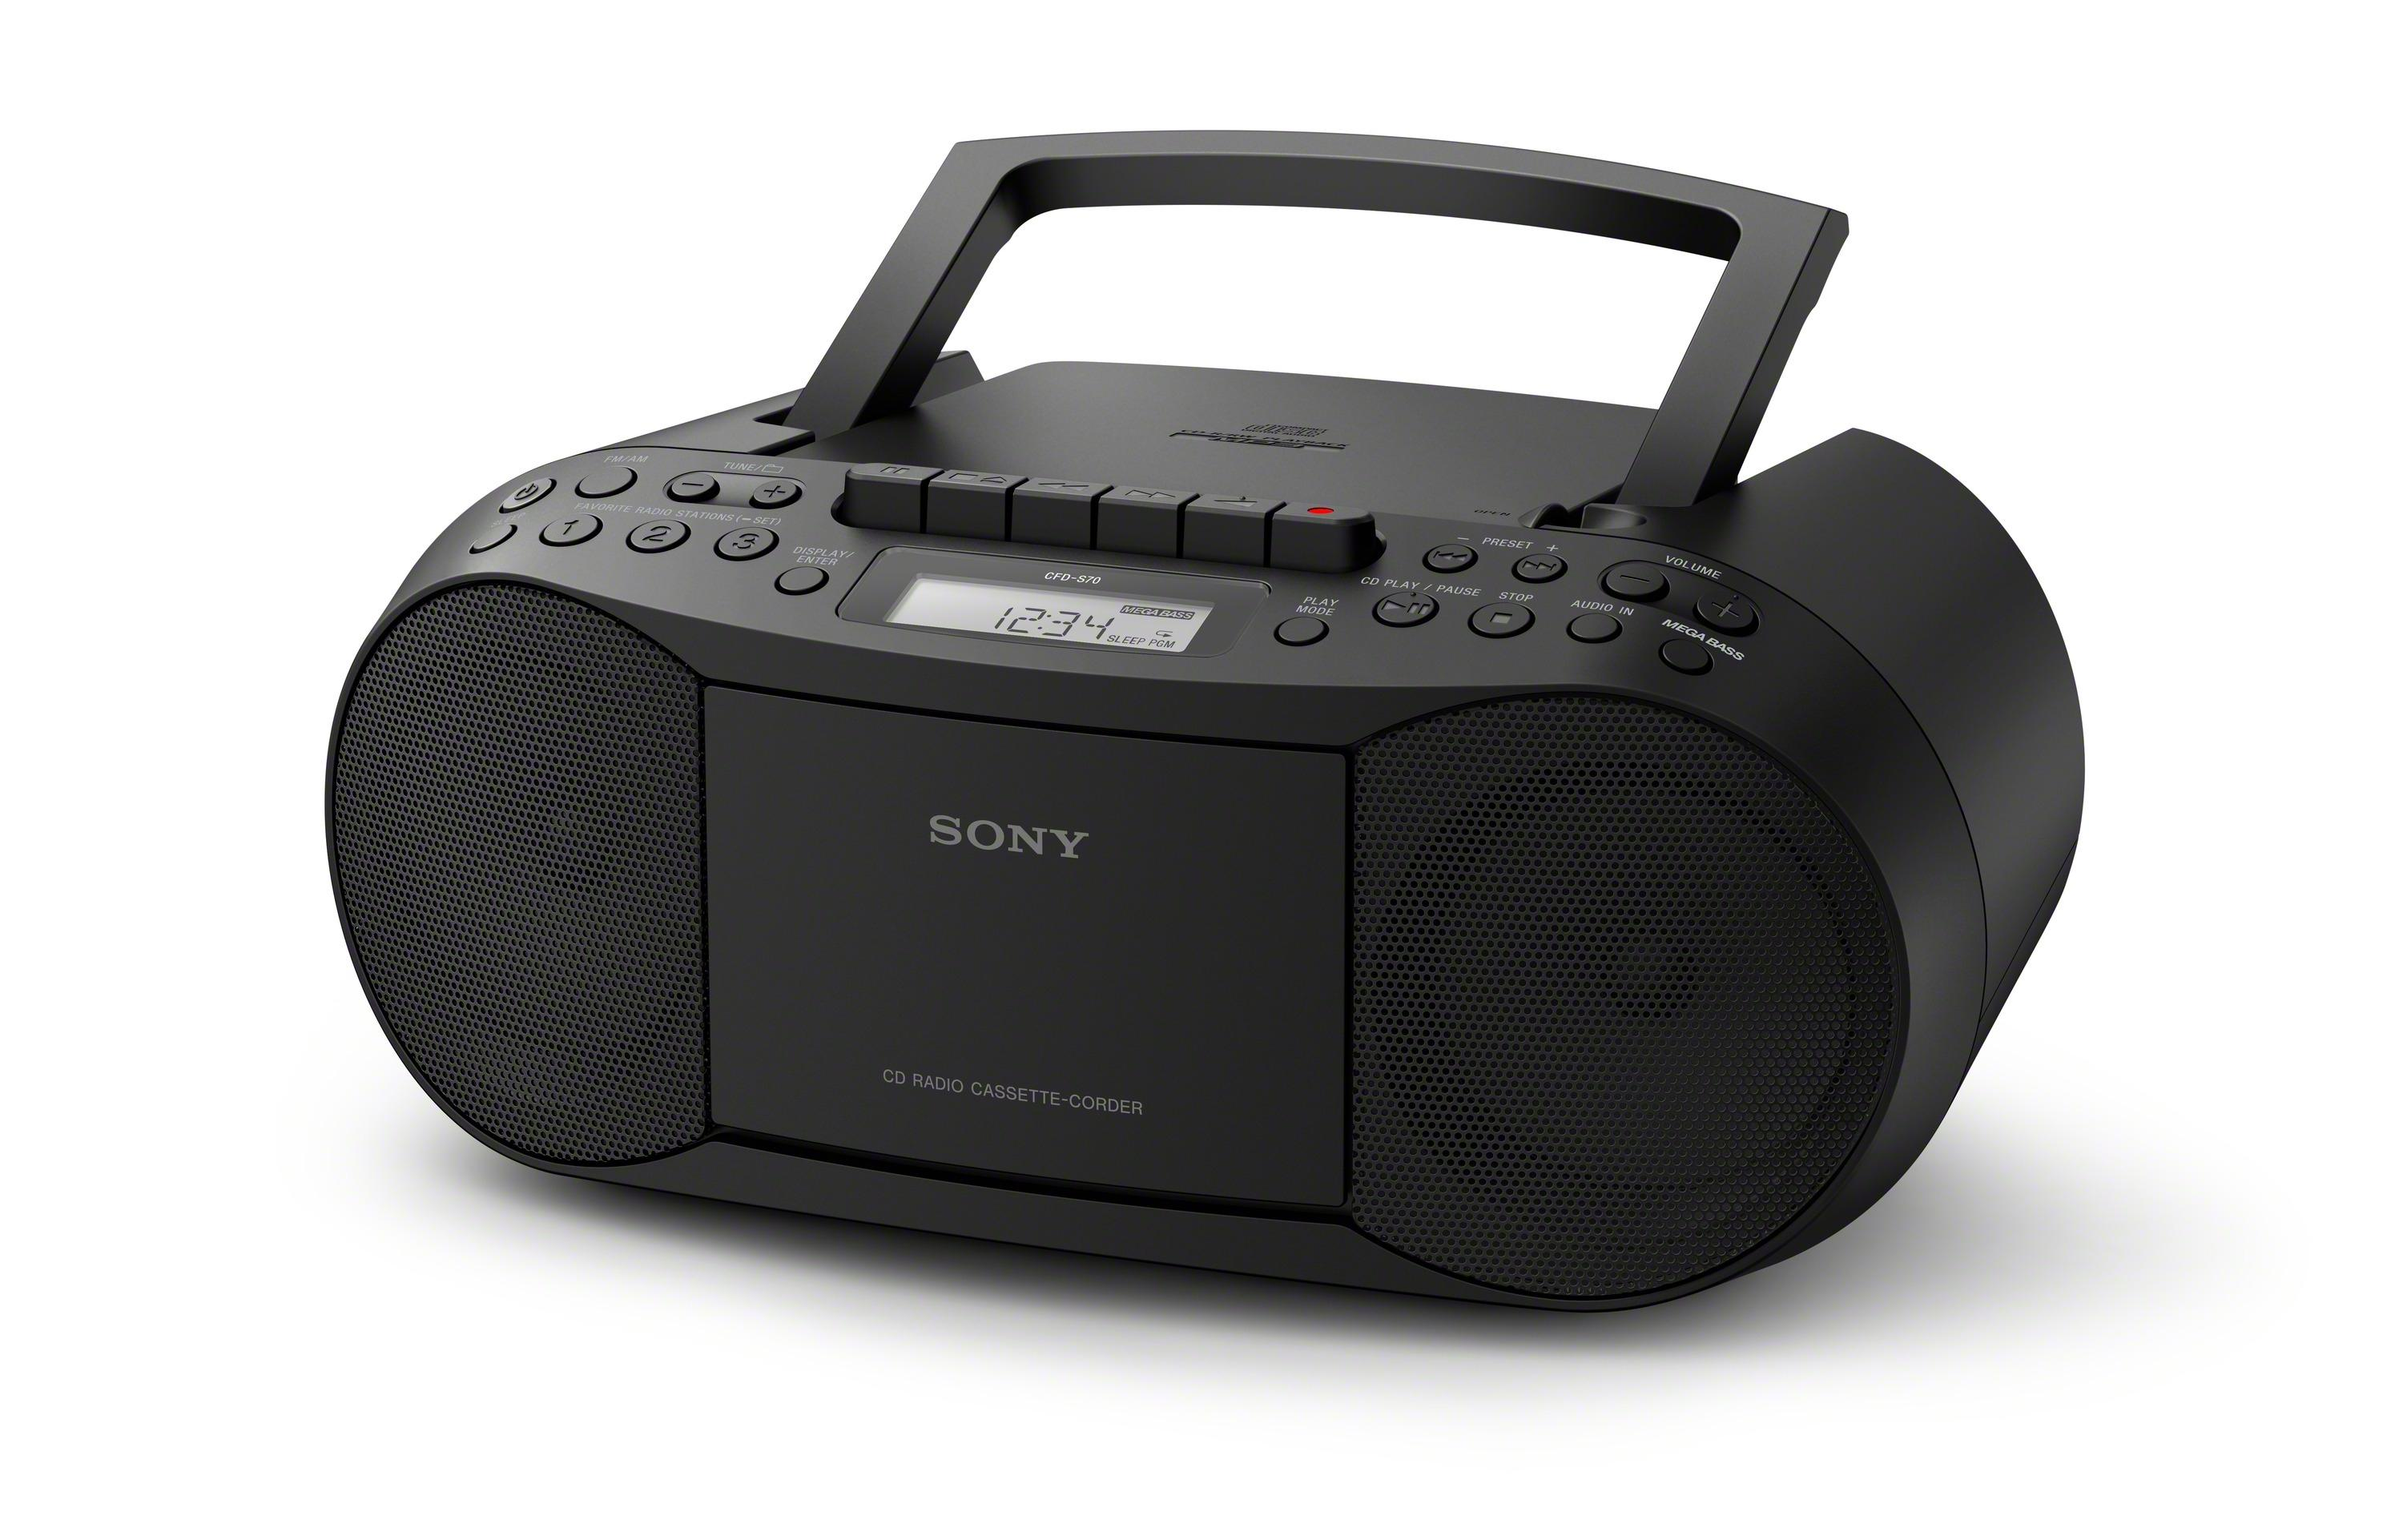 sony cfds70b cek classic cd and tape boombox with radio. Black Bedroom Furniture Sets. Home Design Ideas